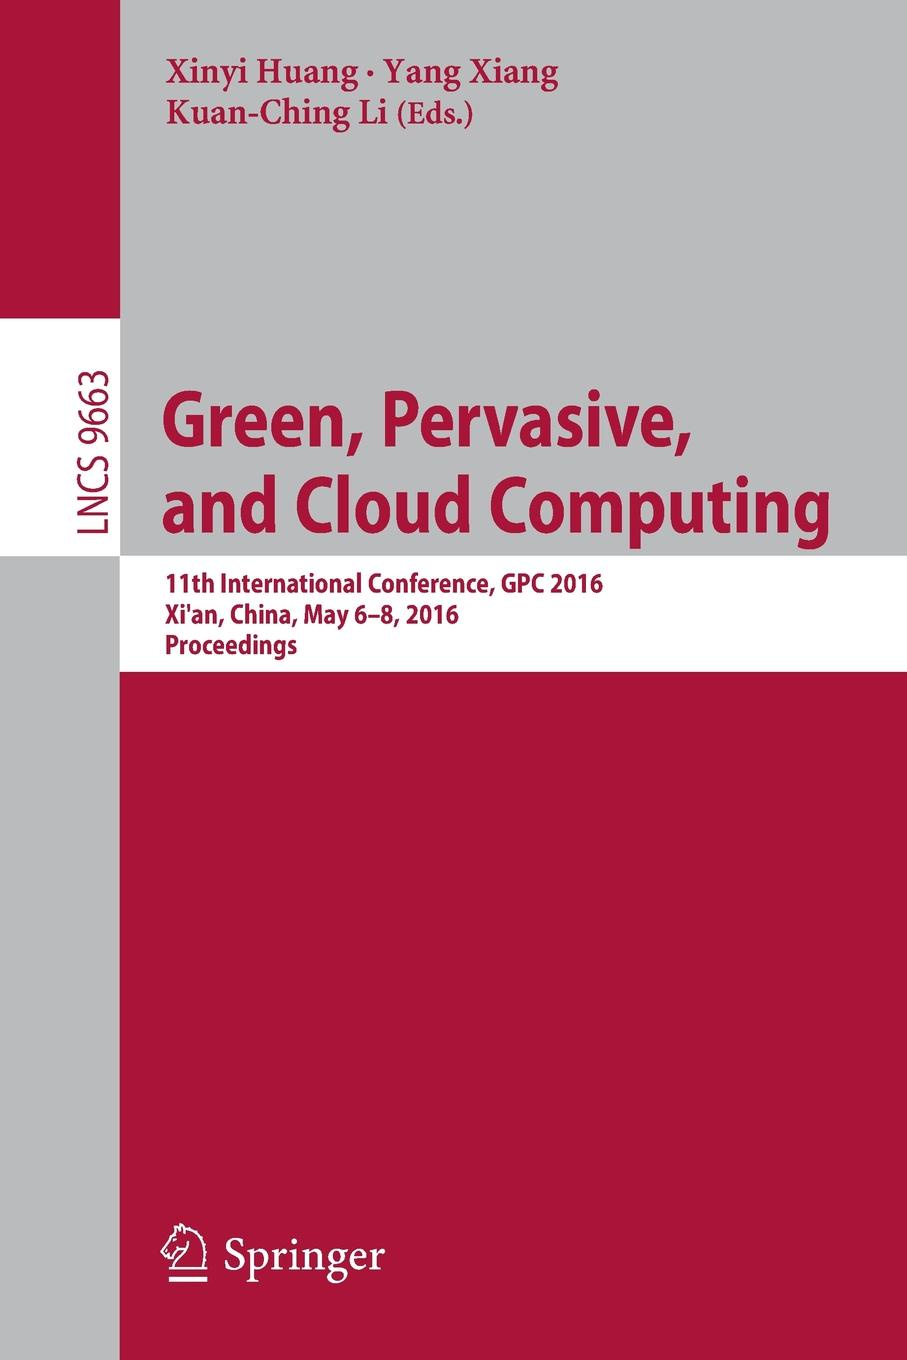 Green, Pervasive, and Cloud Computing. 11th International Conference, GPC 2016, Xi'an, China, May 6-8, 2016. Proceedings все цены